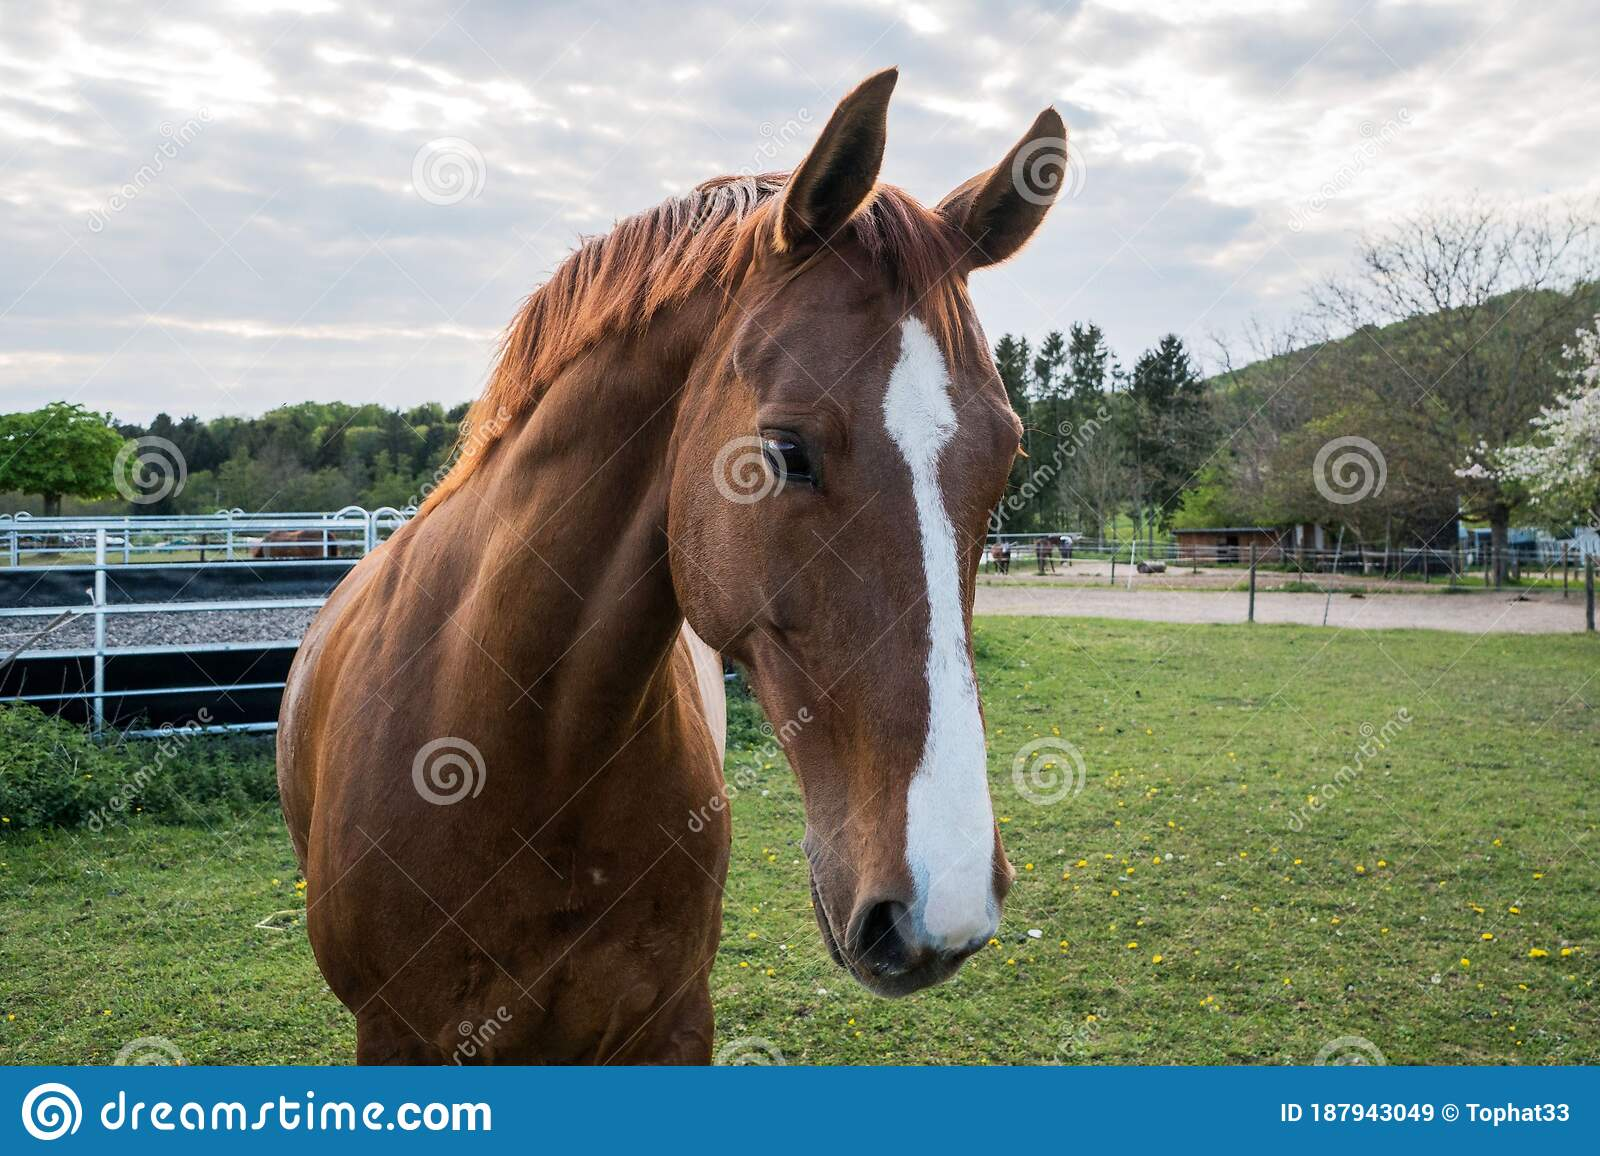 Horse Eating Grass In A Yard Of A Farm Beautiful Colors At Sunset South Stock Image Image Of Artistic Dark 187943049